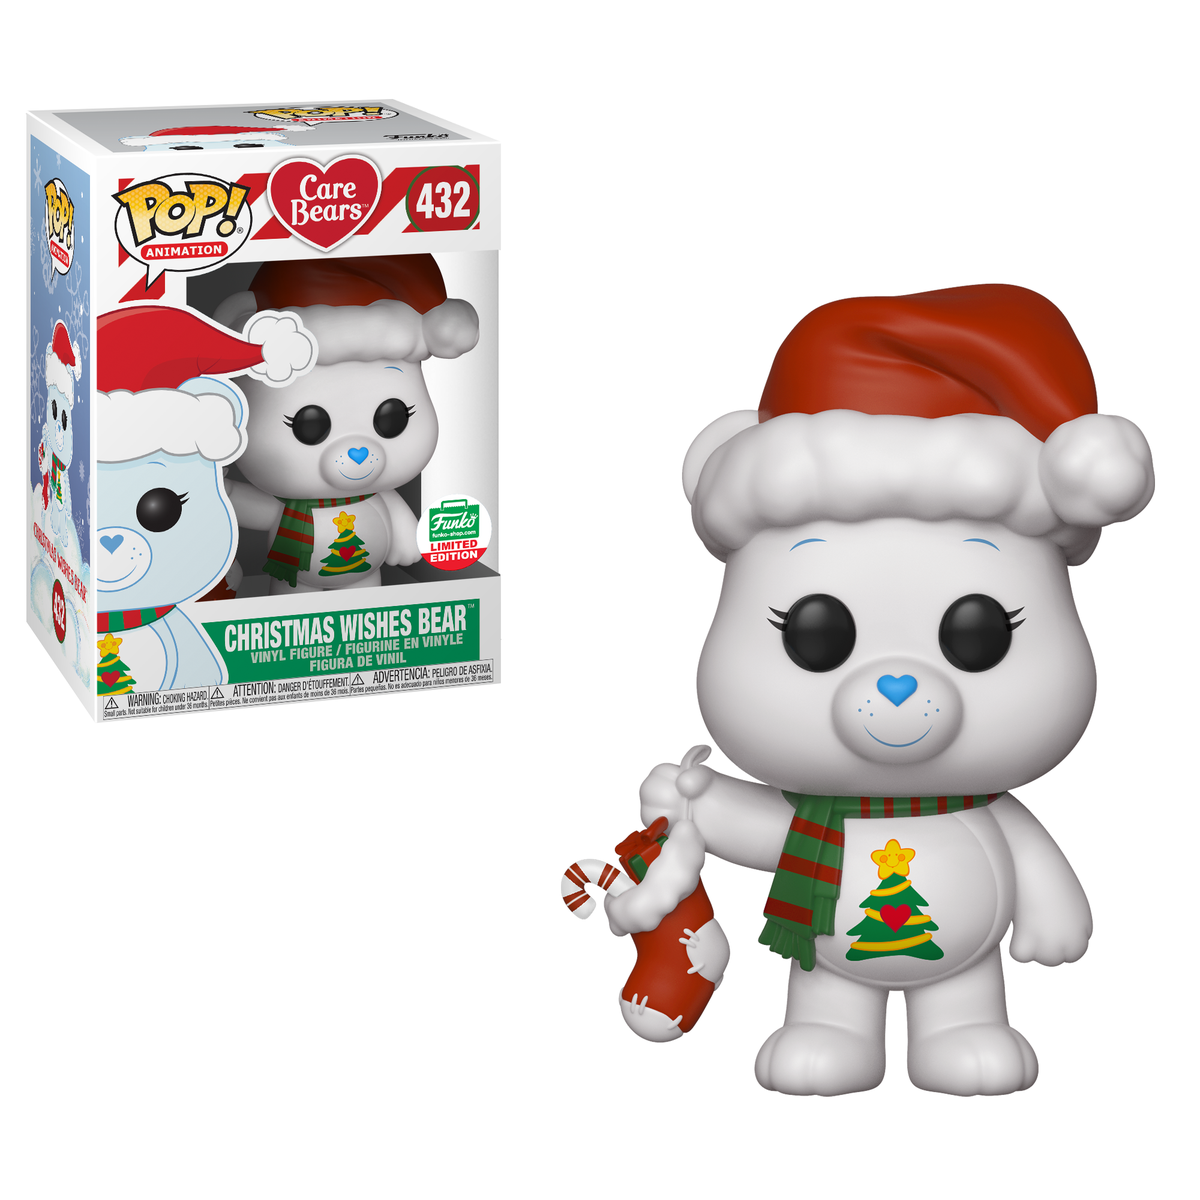 RT & follow @OriginalFunko for the chance to win a Funko Shop exclusive Christmas Wishes Care Bear Pop!